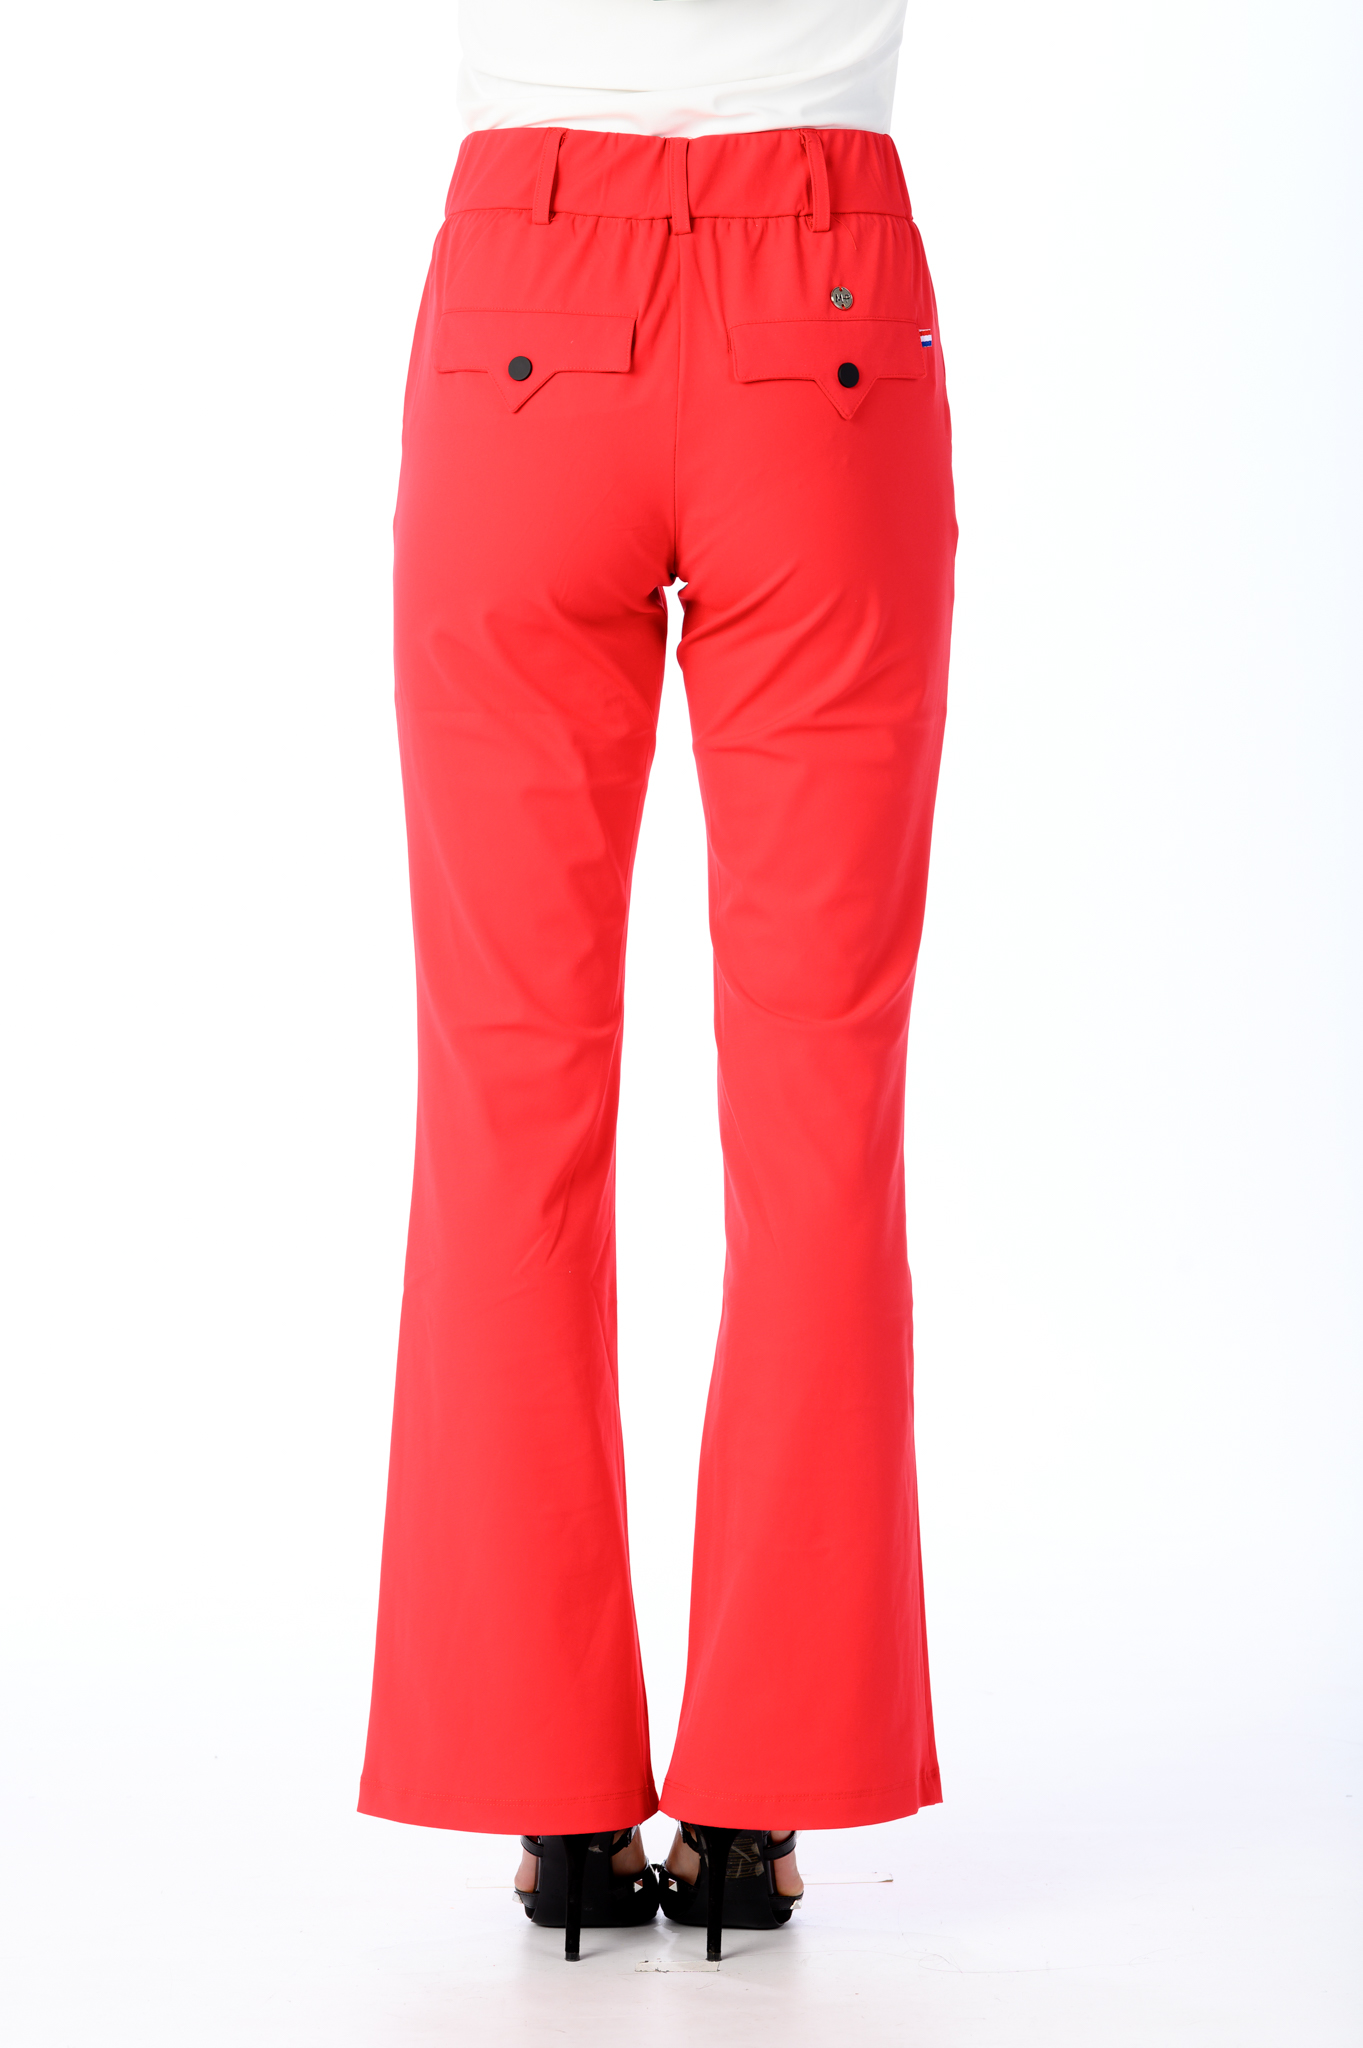 Travelstof broek My Pashion Rood